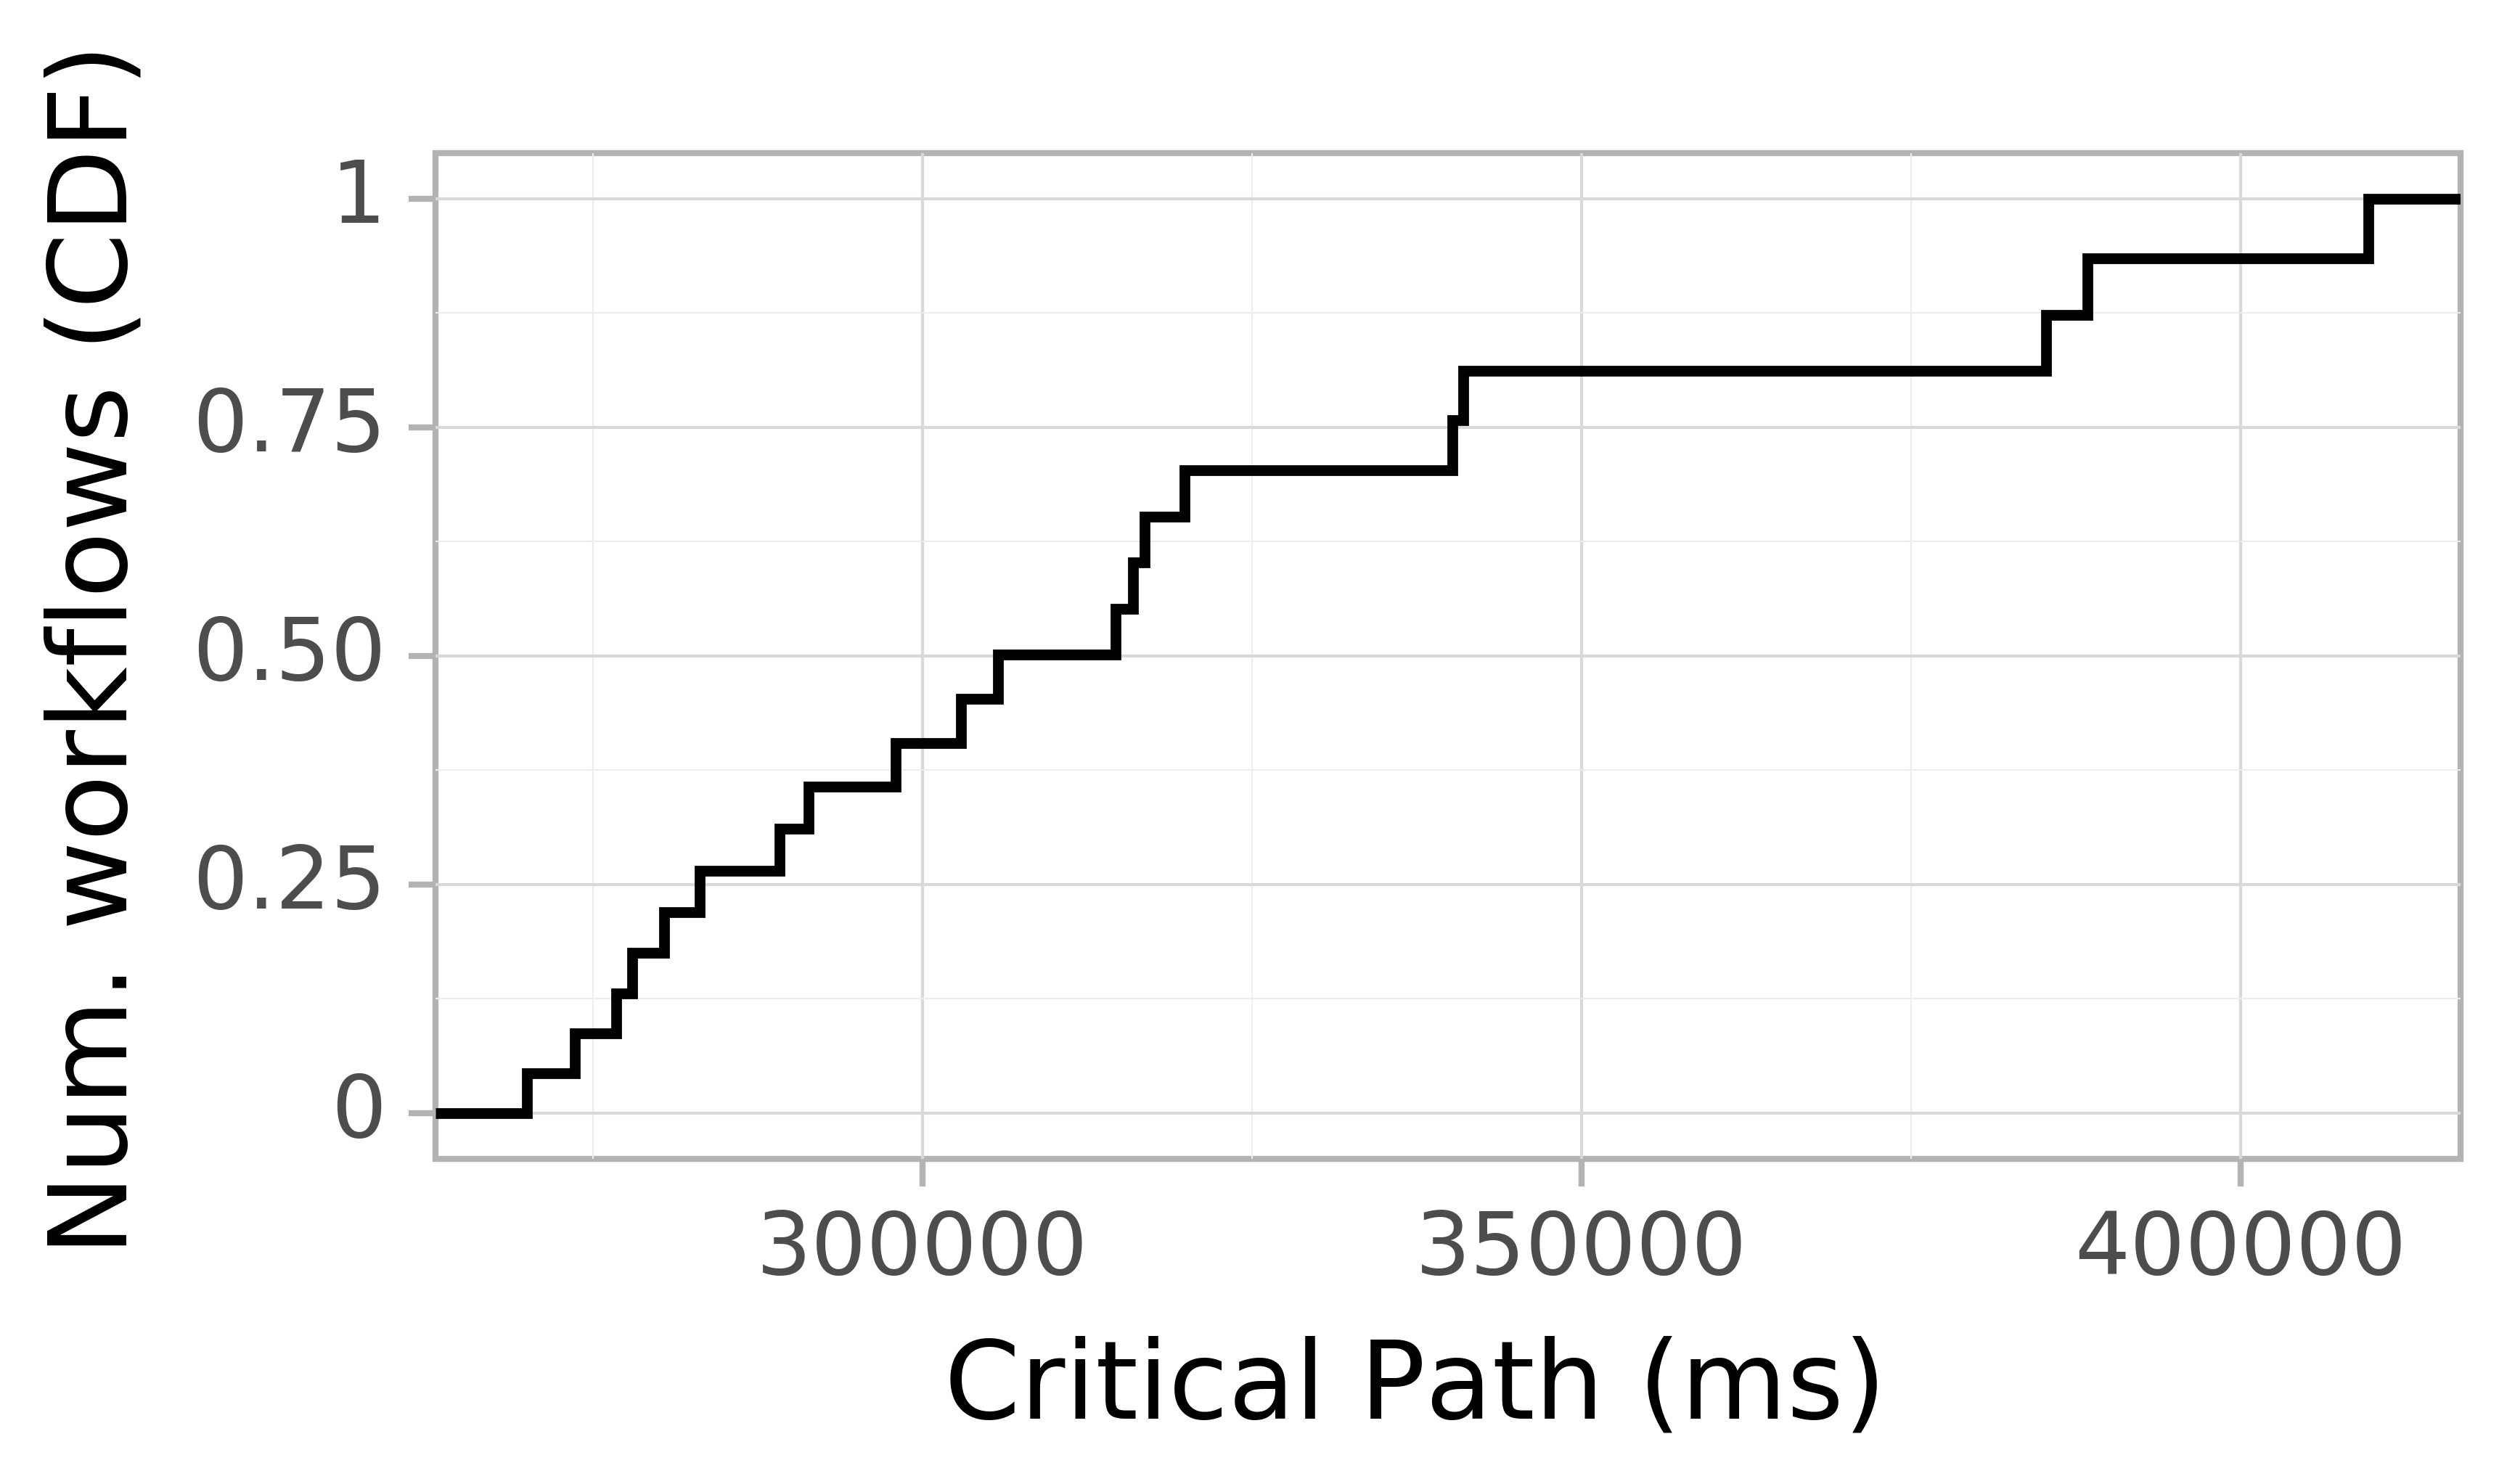 Job runtime CDF graph for the askalon-new_ee30 trace.